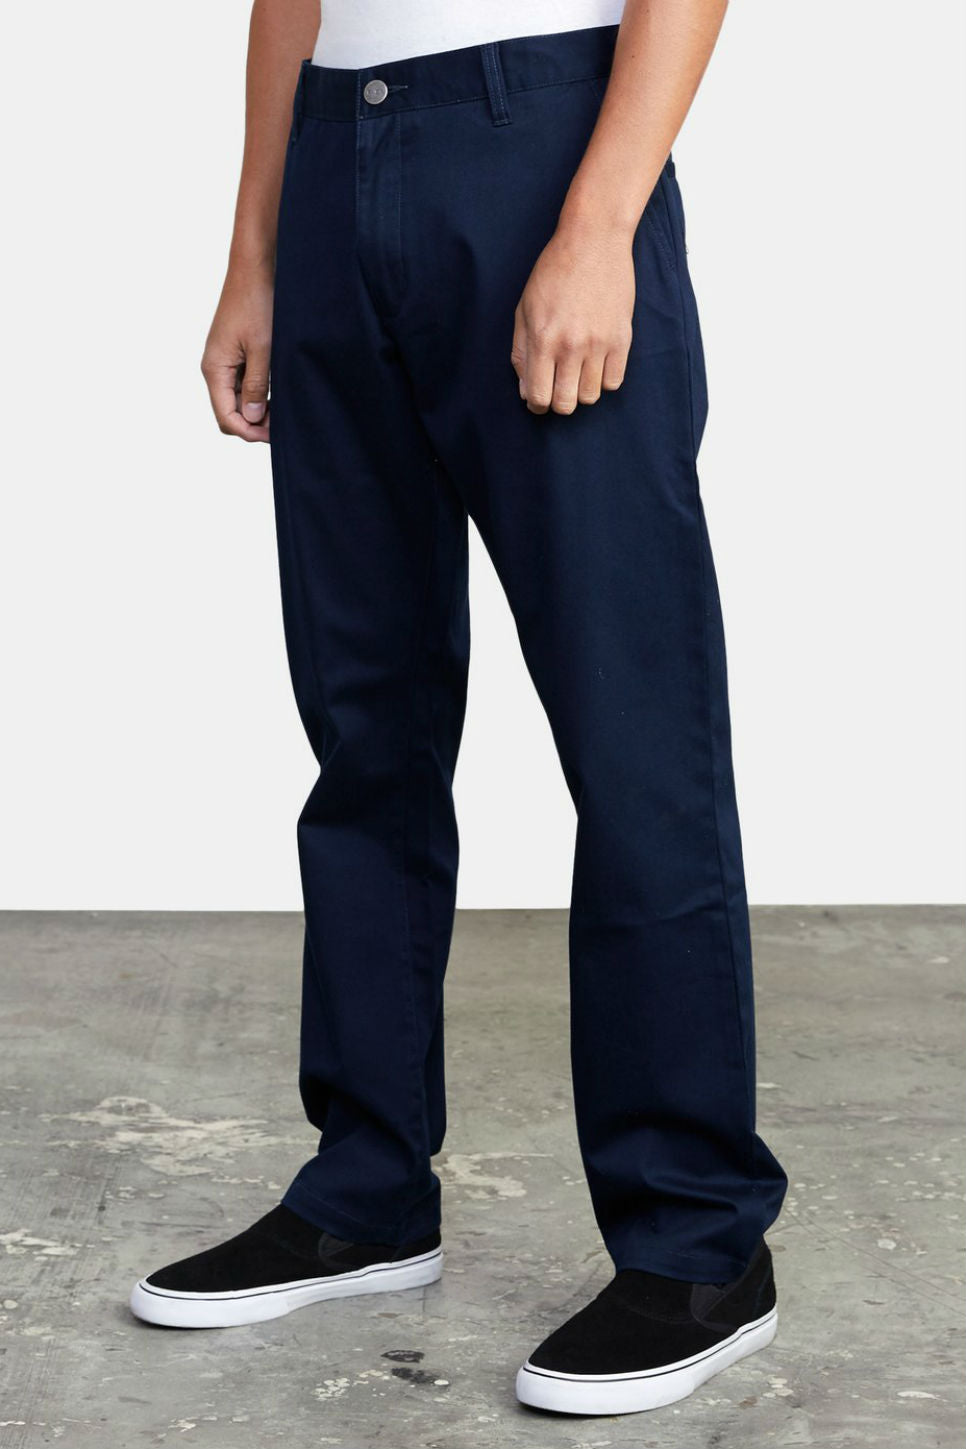 RVCA - The Weekend Stretch - Navy Marine - Side